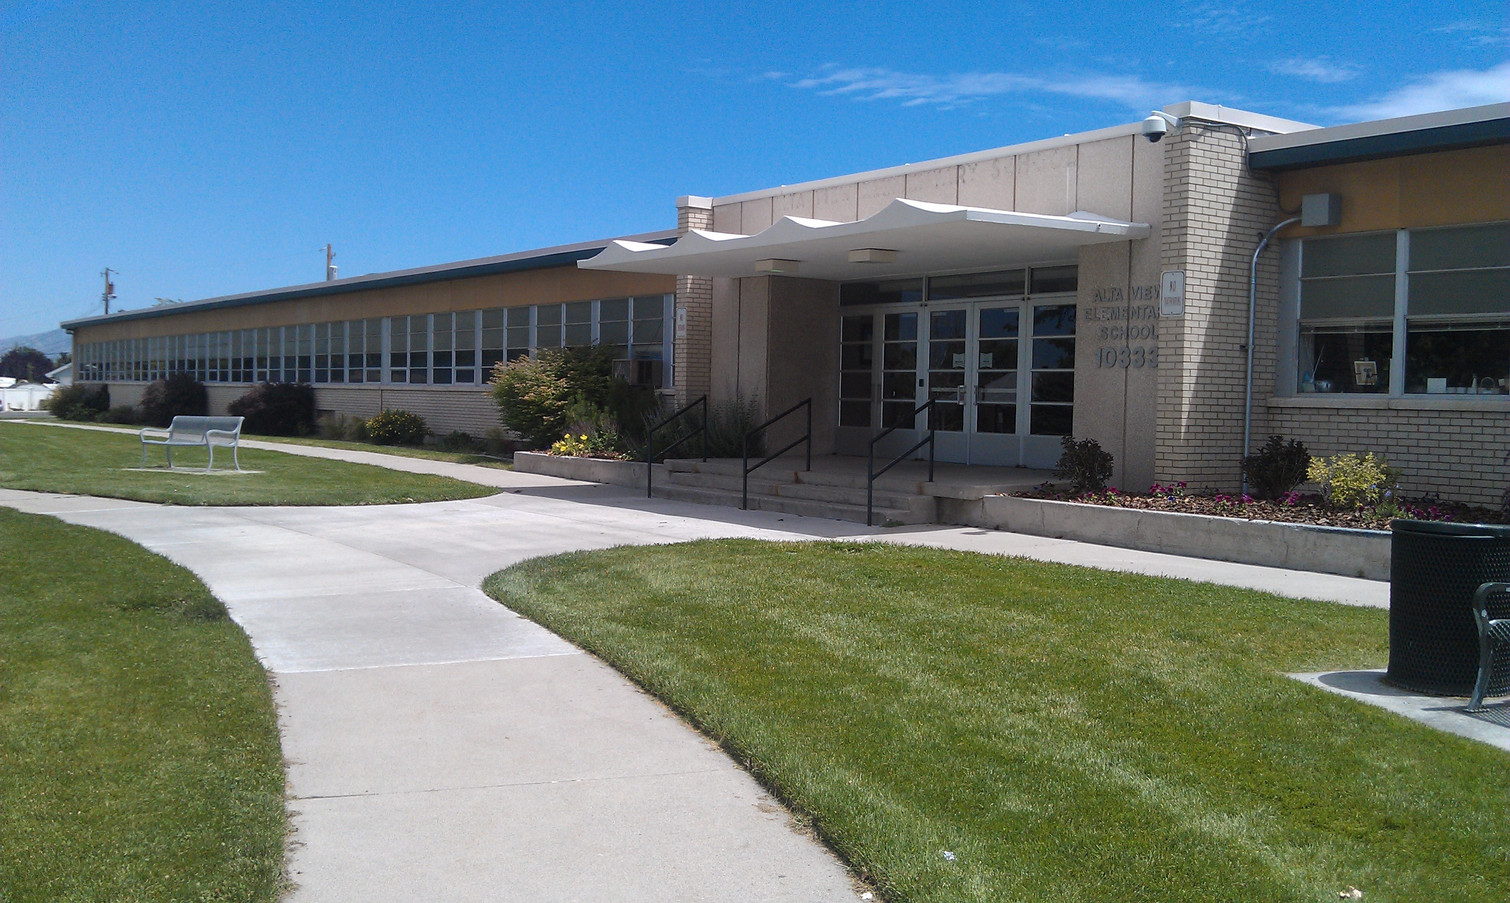 Alta View Elementary